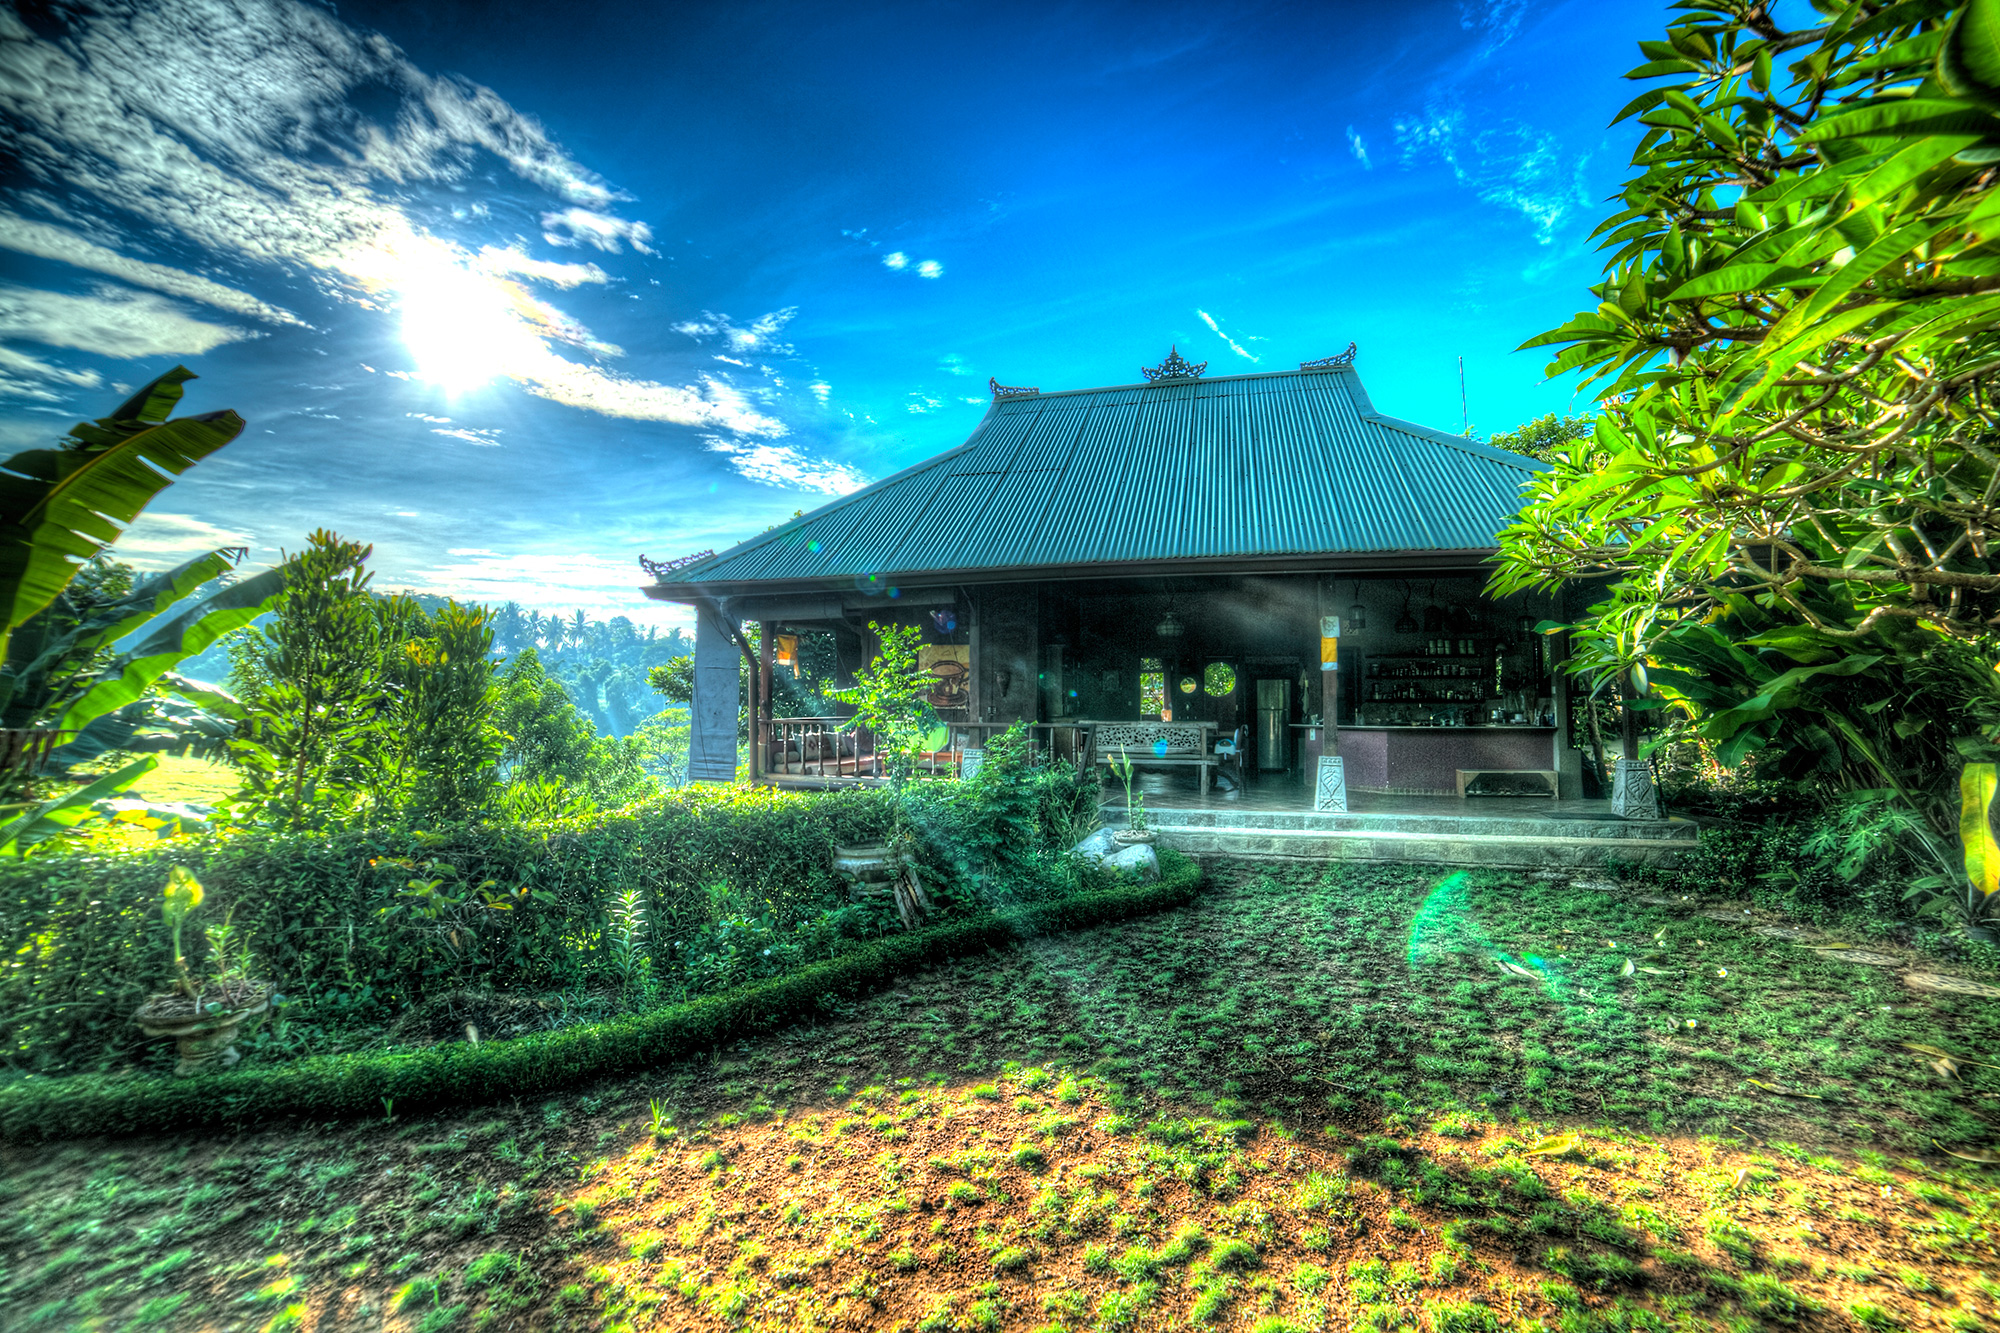 474A9221_2_3_tonemapped